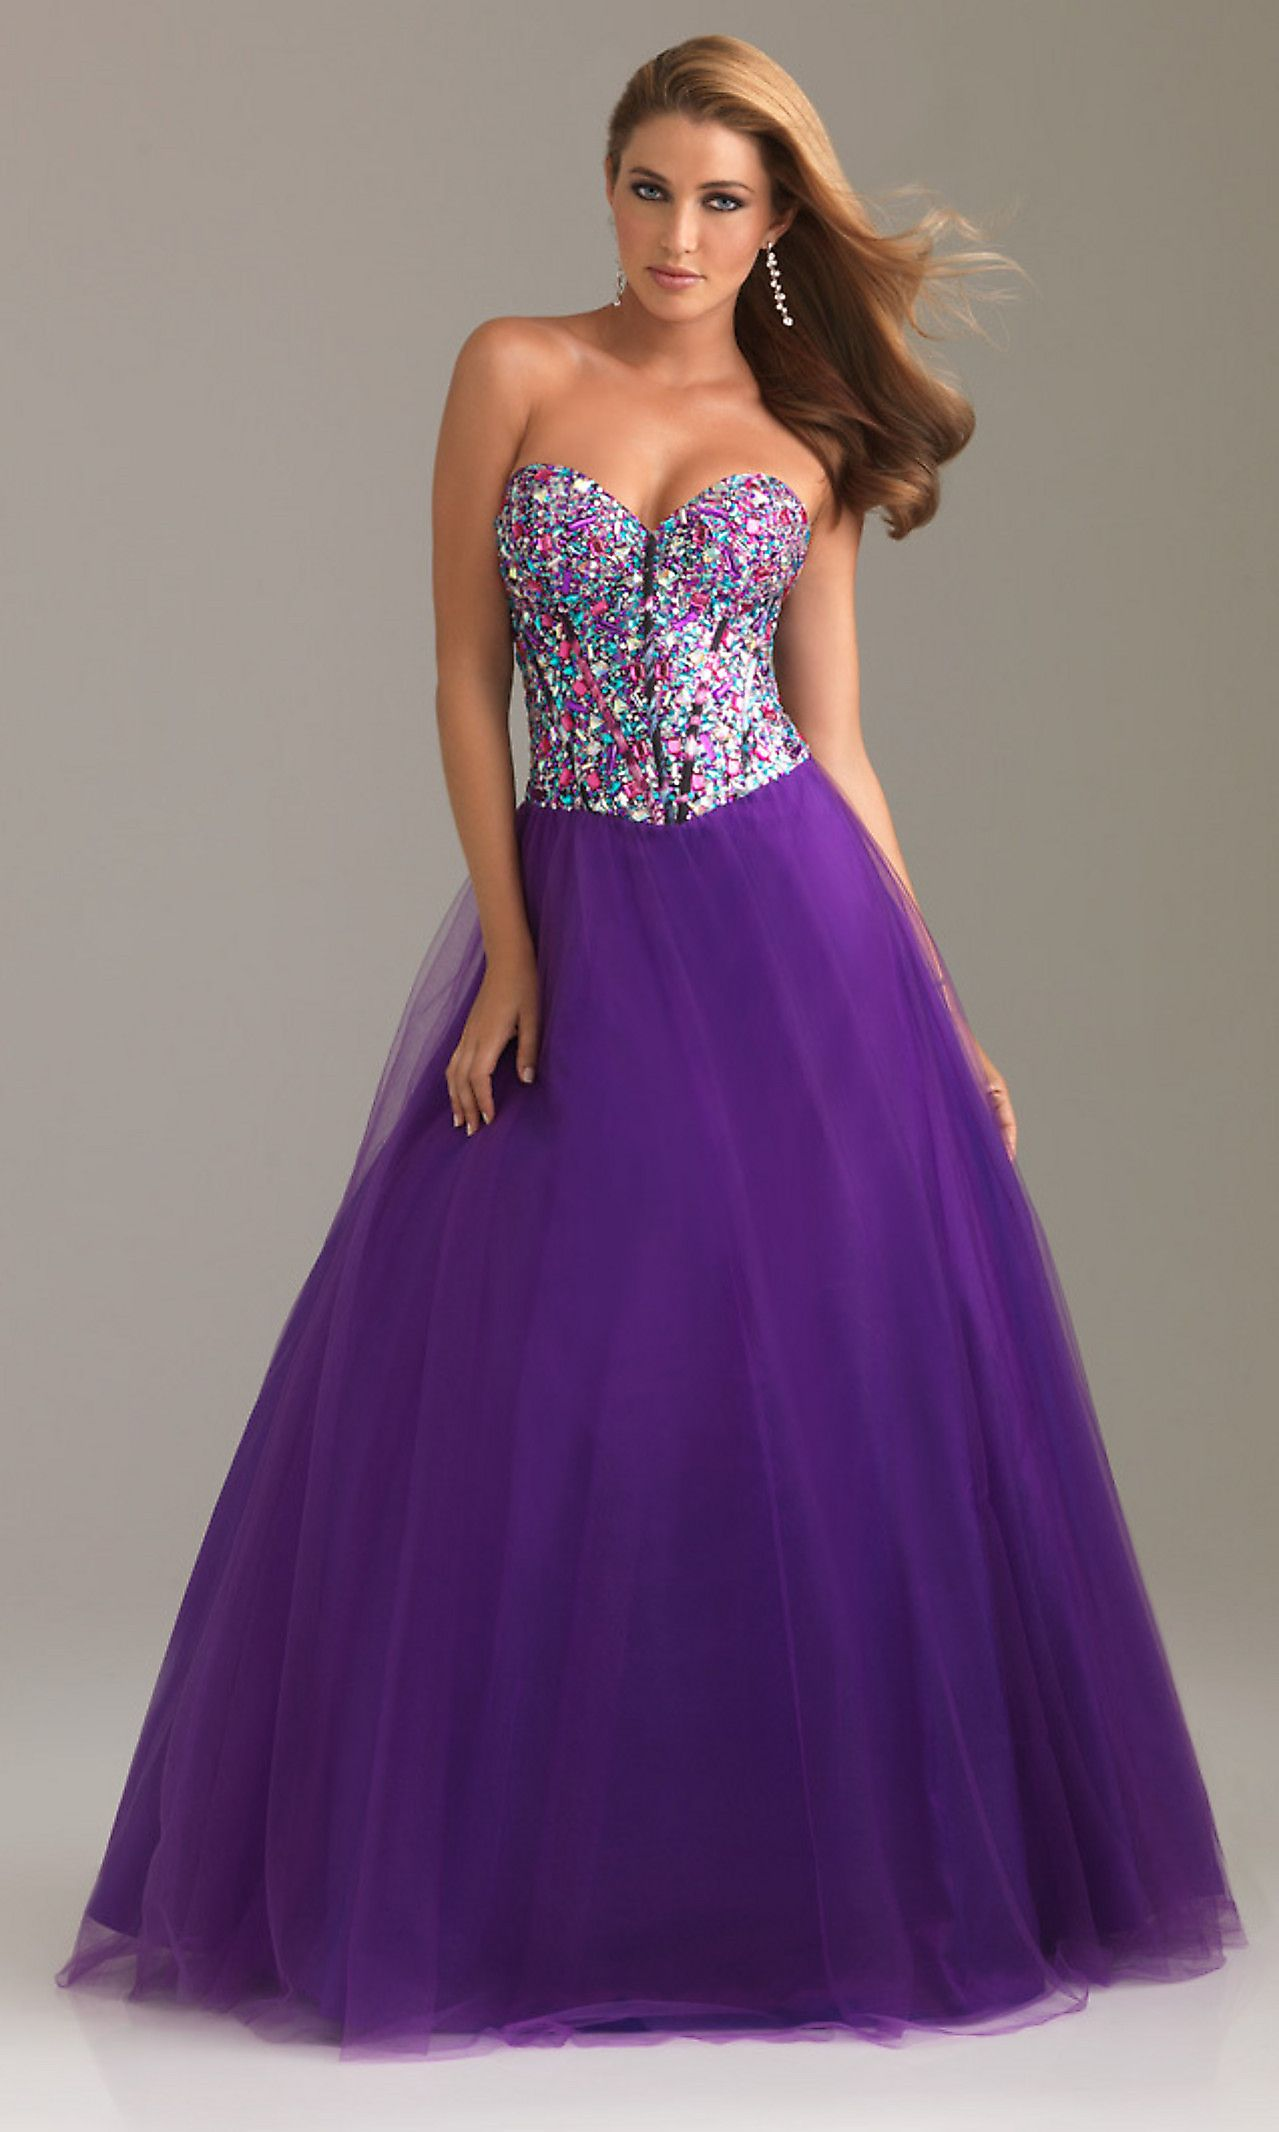 I want a poofy dress like this for prom.. | My Fantasy Closet ...